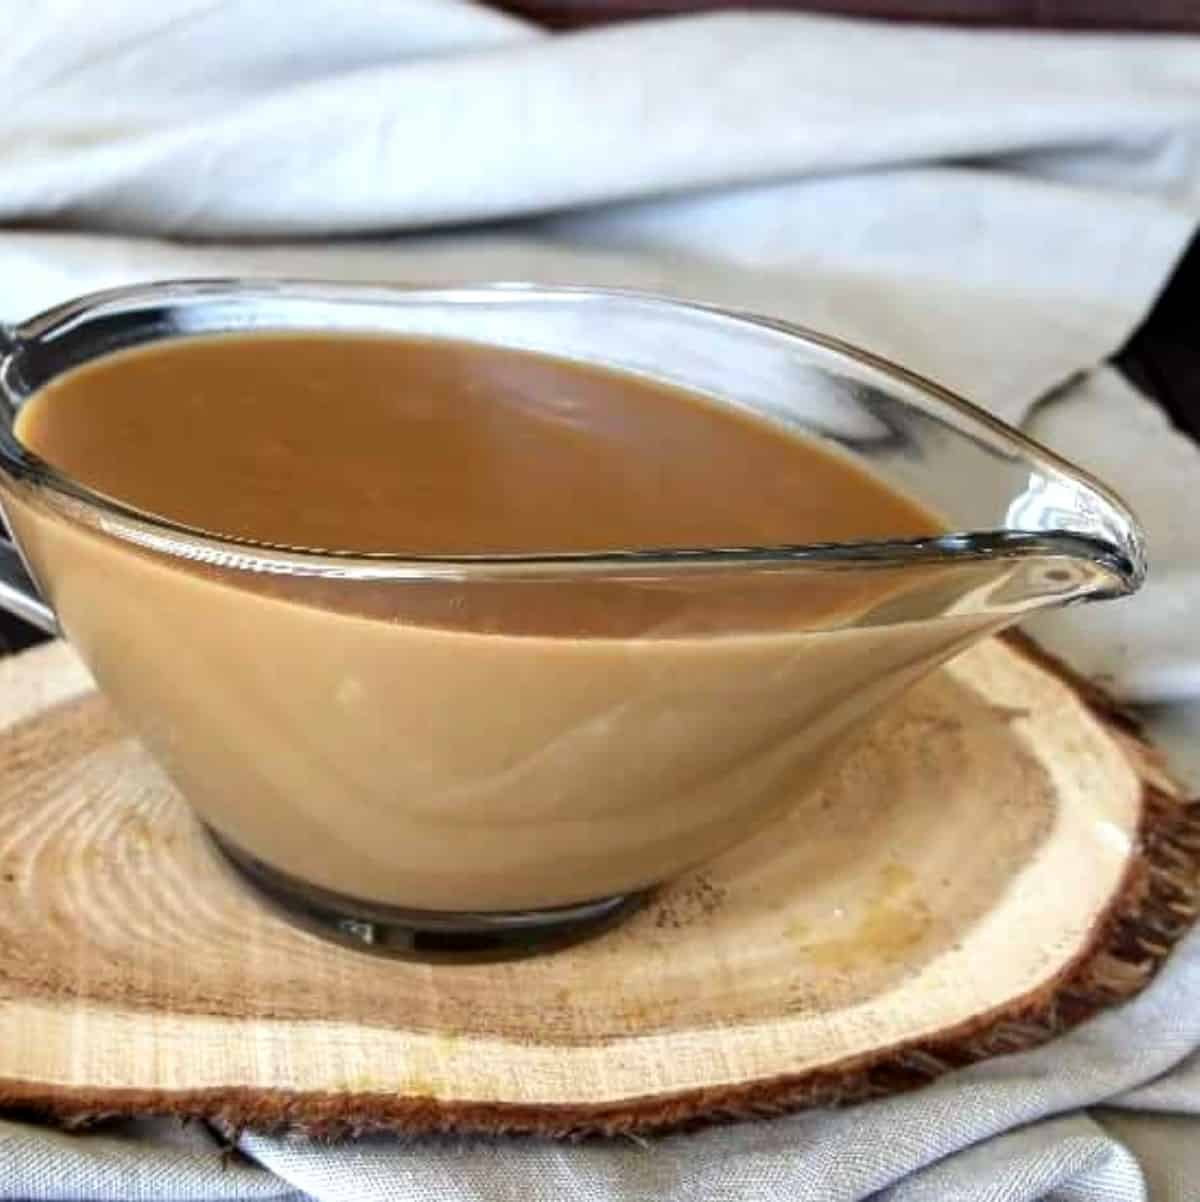 A Gravy Boat filled with gravy sitting on a wooden trivet.